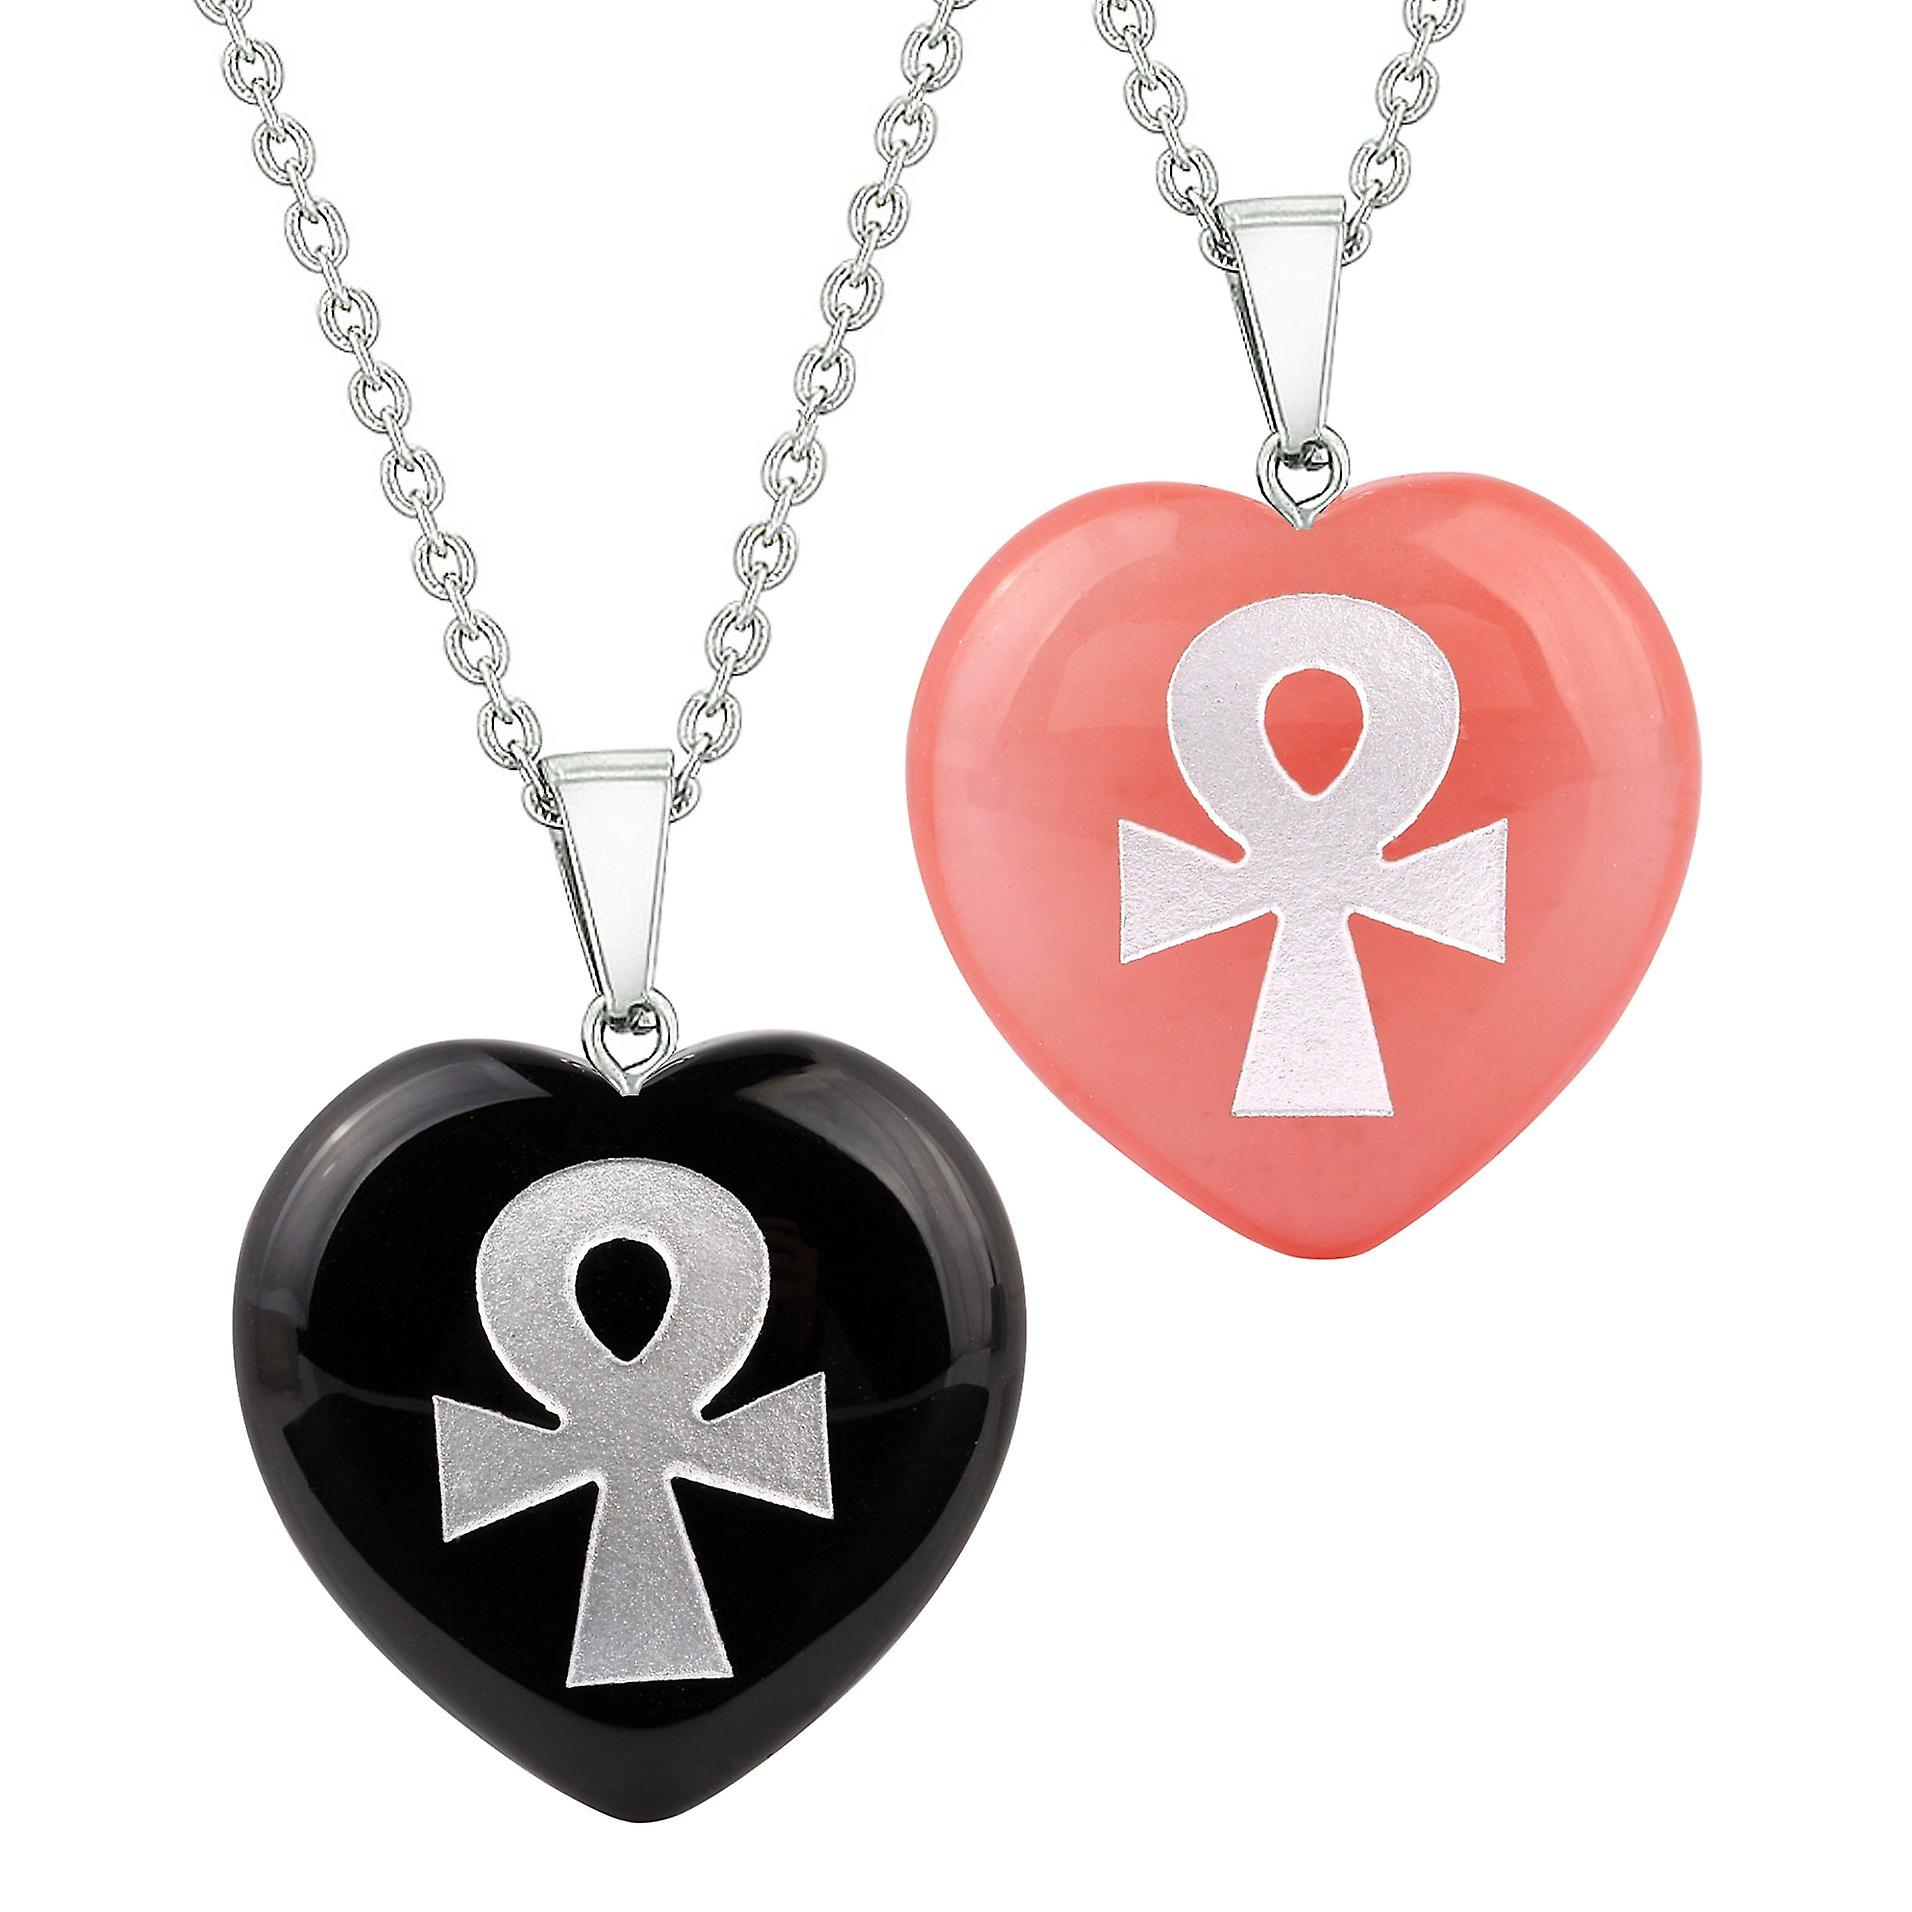 Heart Amulets Ankh Egyptian Powers of Life Couples Best Friends Agate Simulated Quartz colliers